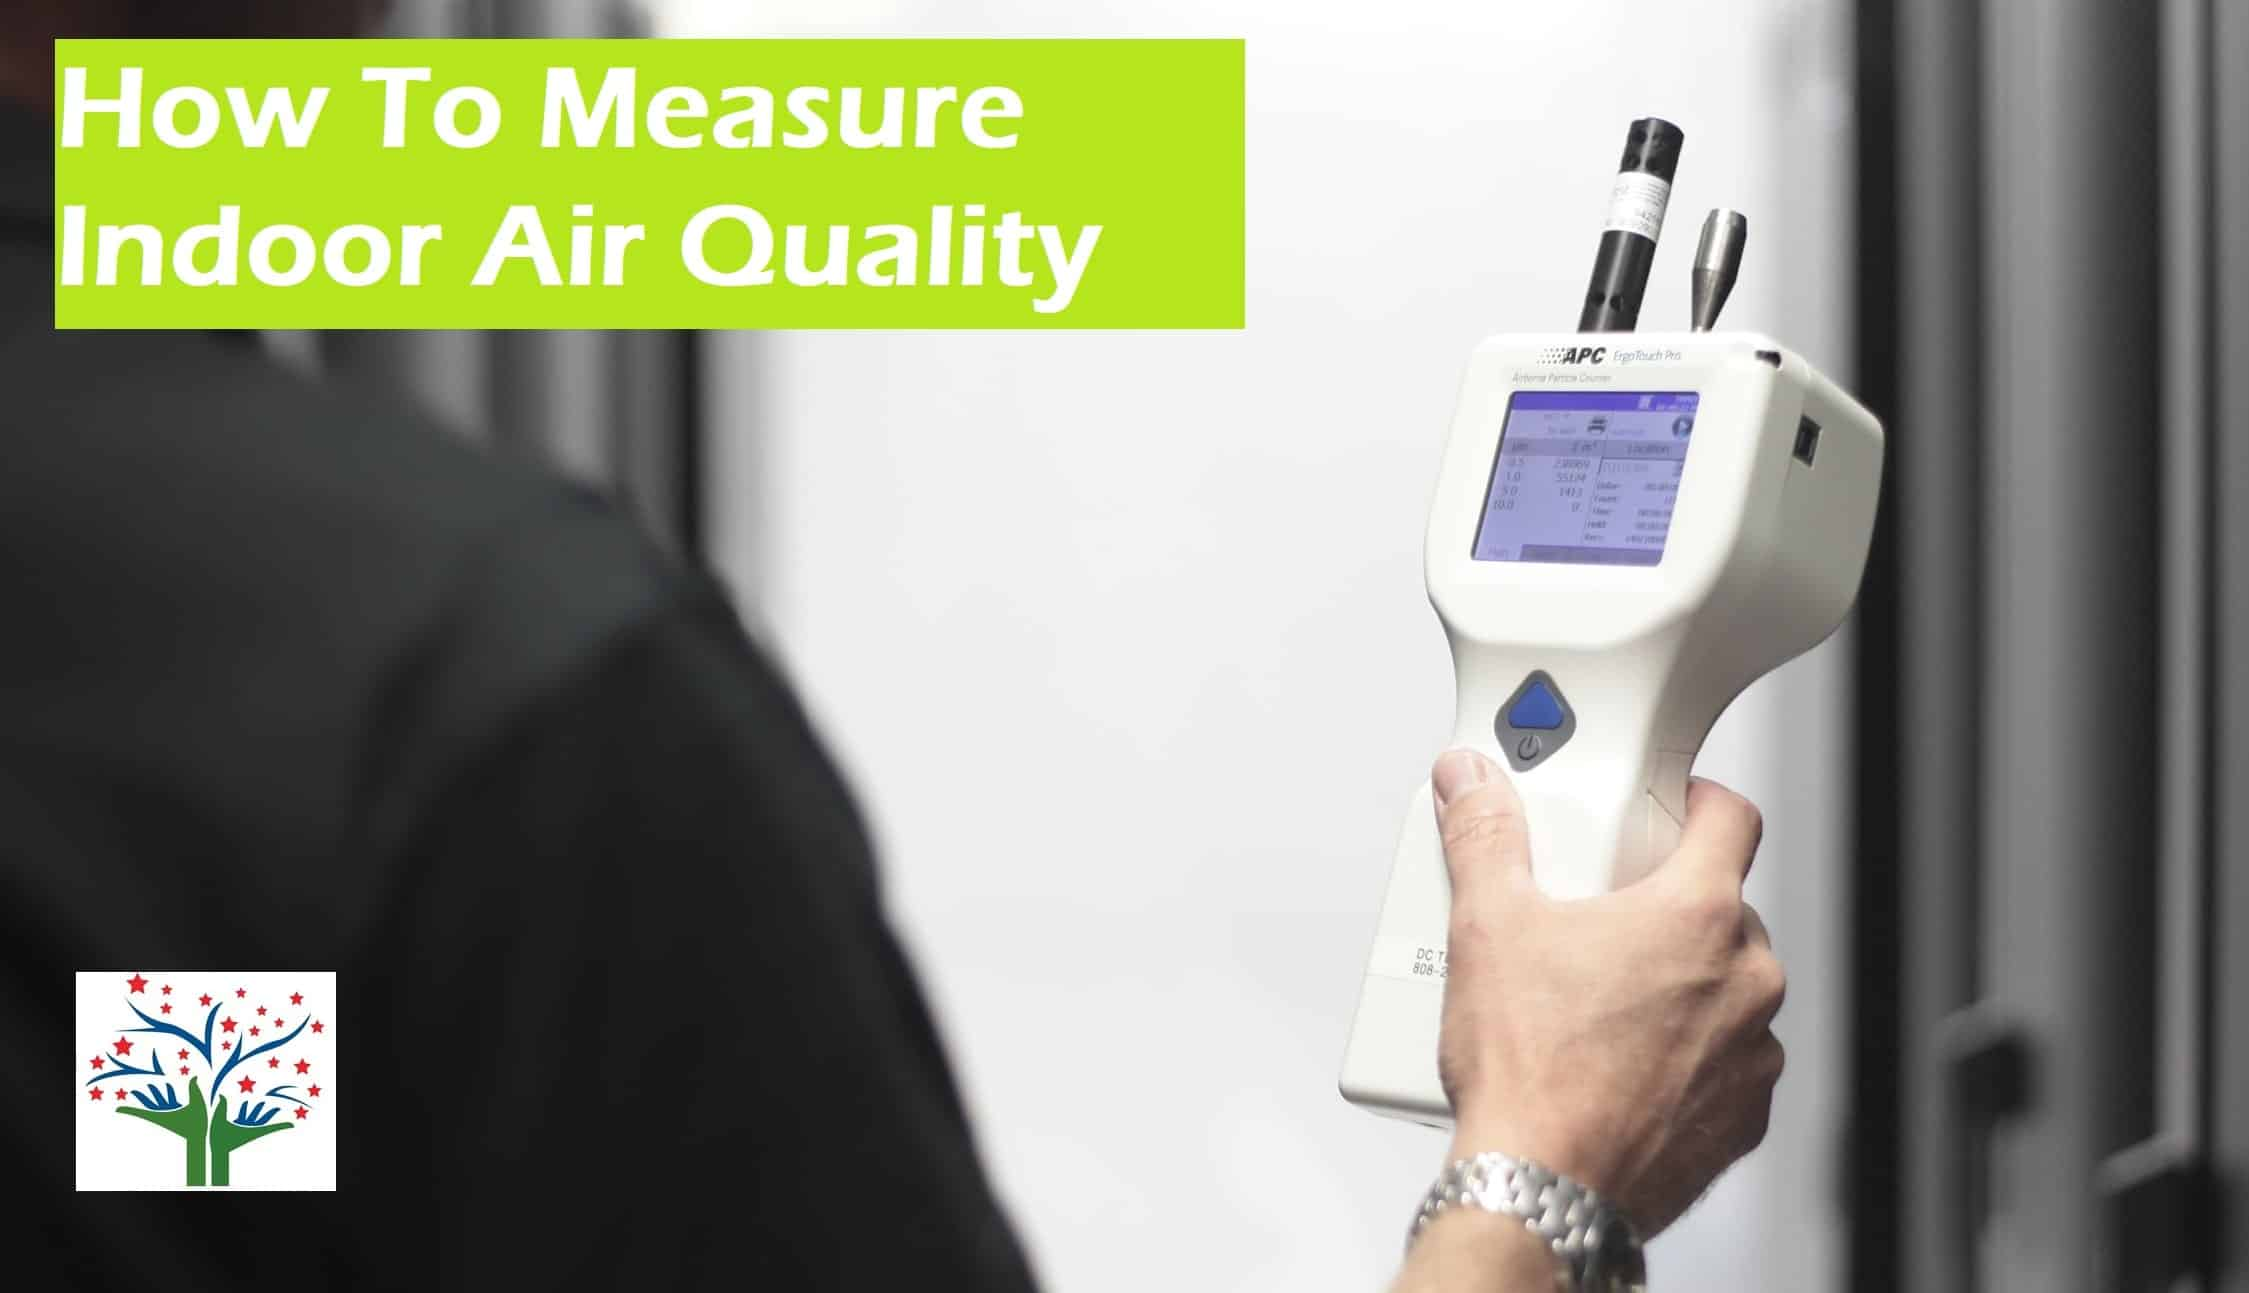 How to Measure Indoor Air Quality?